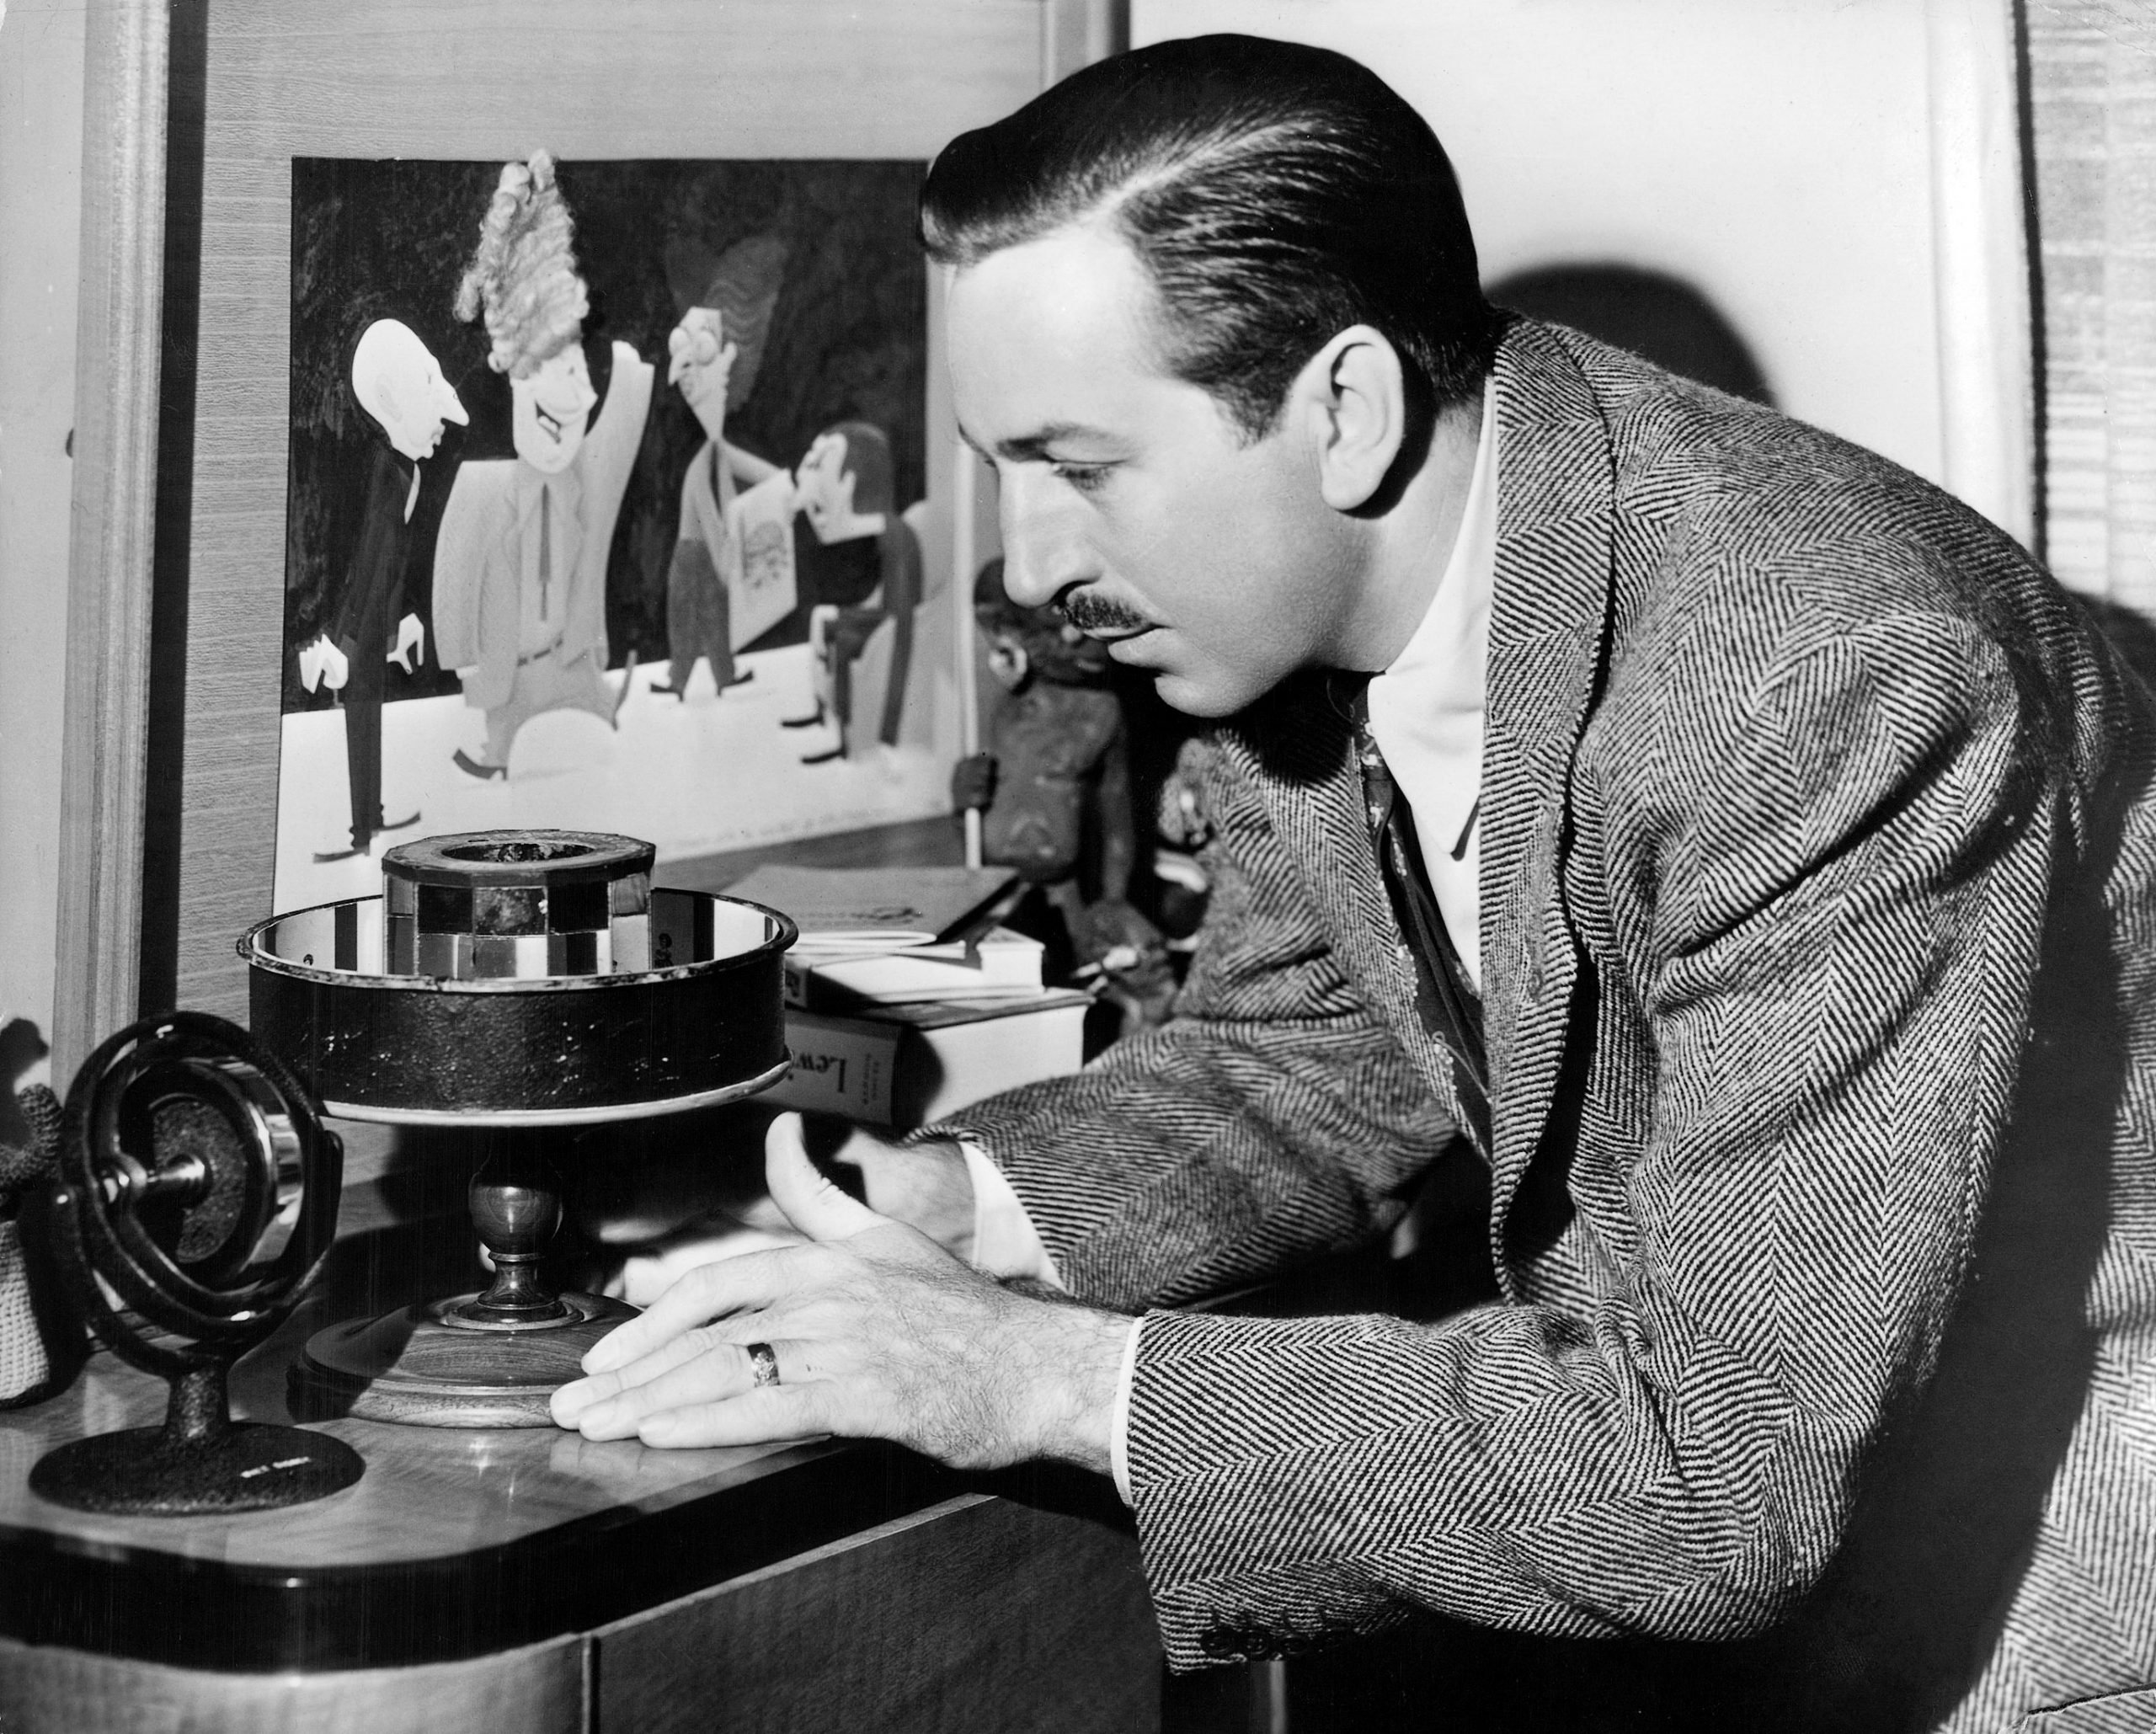 89858449 scaled 20 Magical Facts You Might Not Have Known About Walt Disney